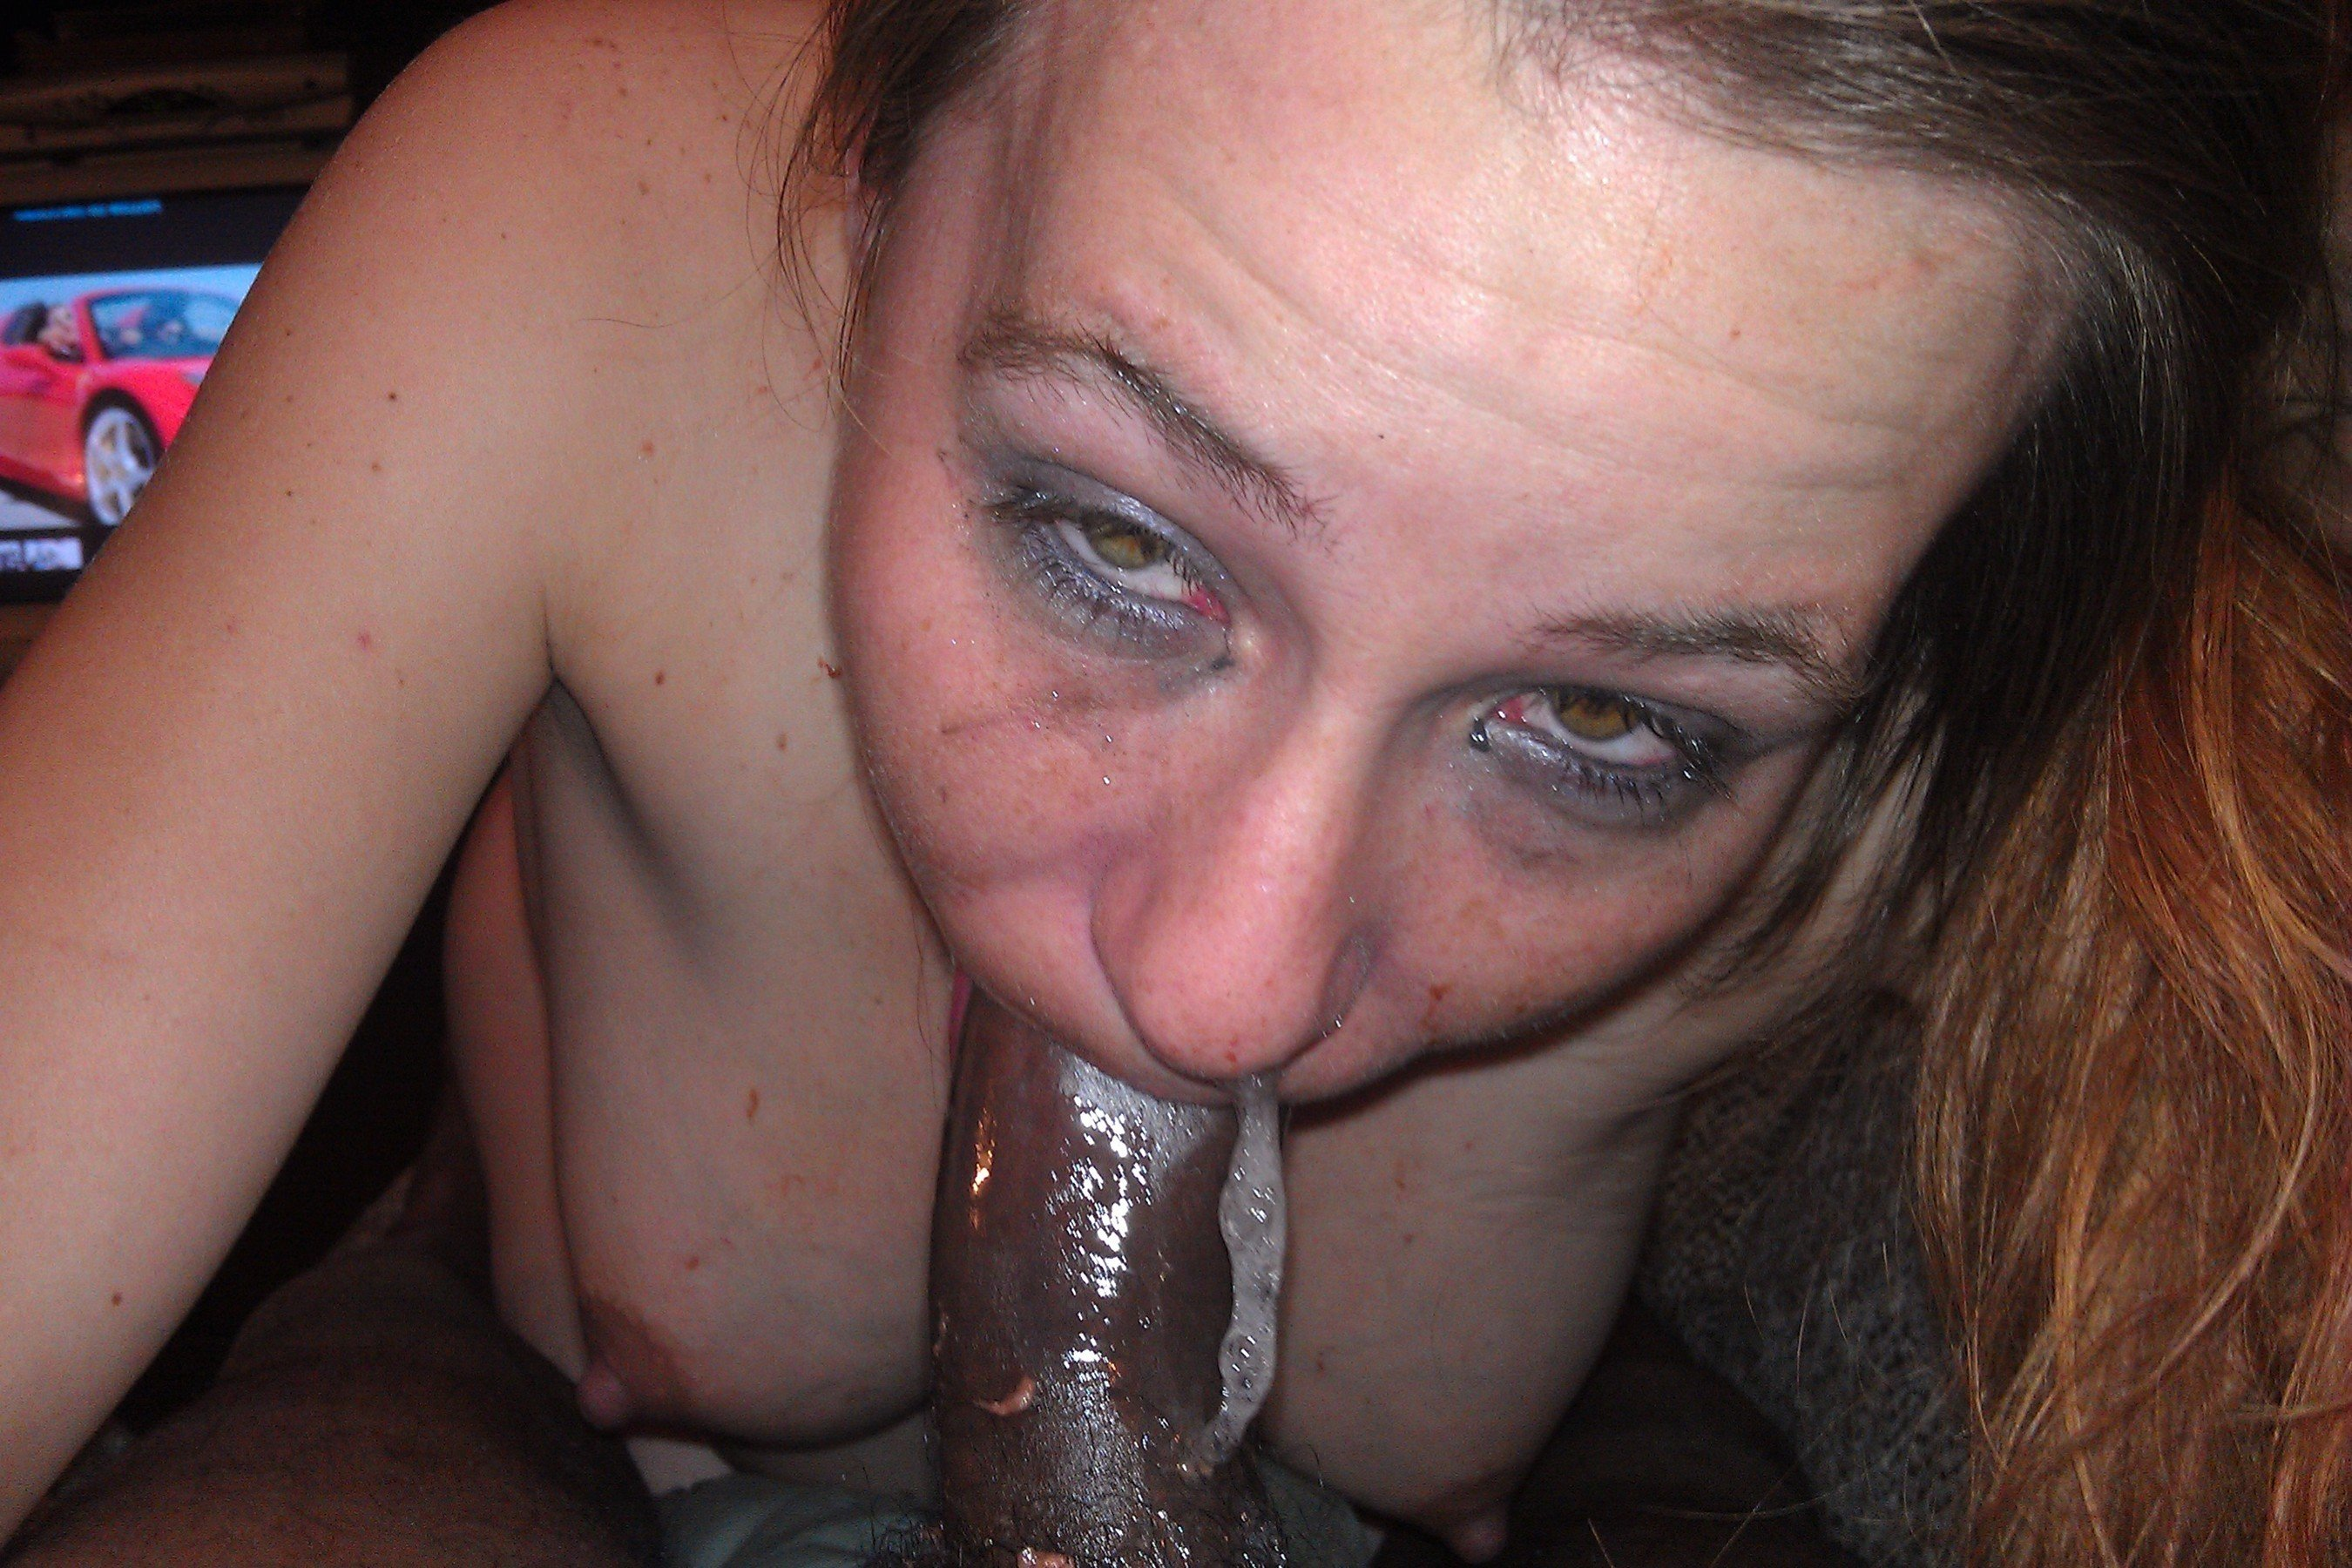 Black milf sucking black dick